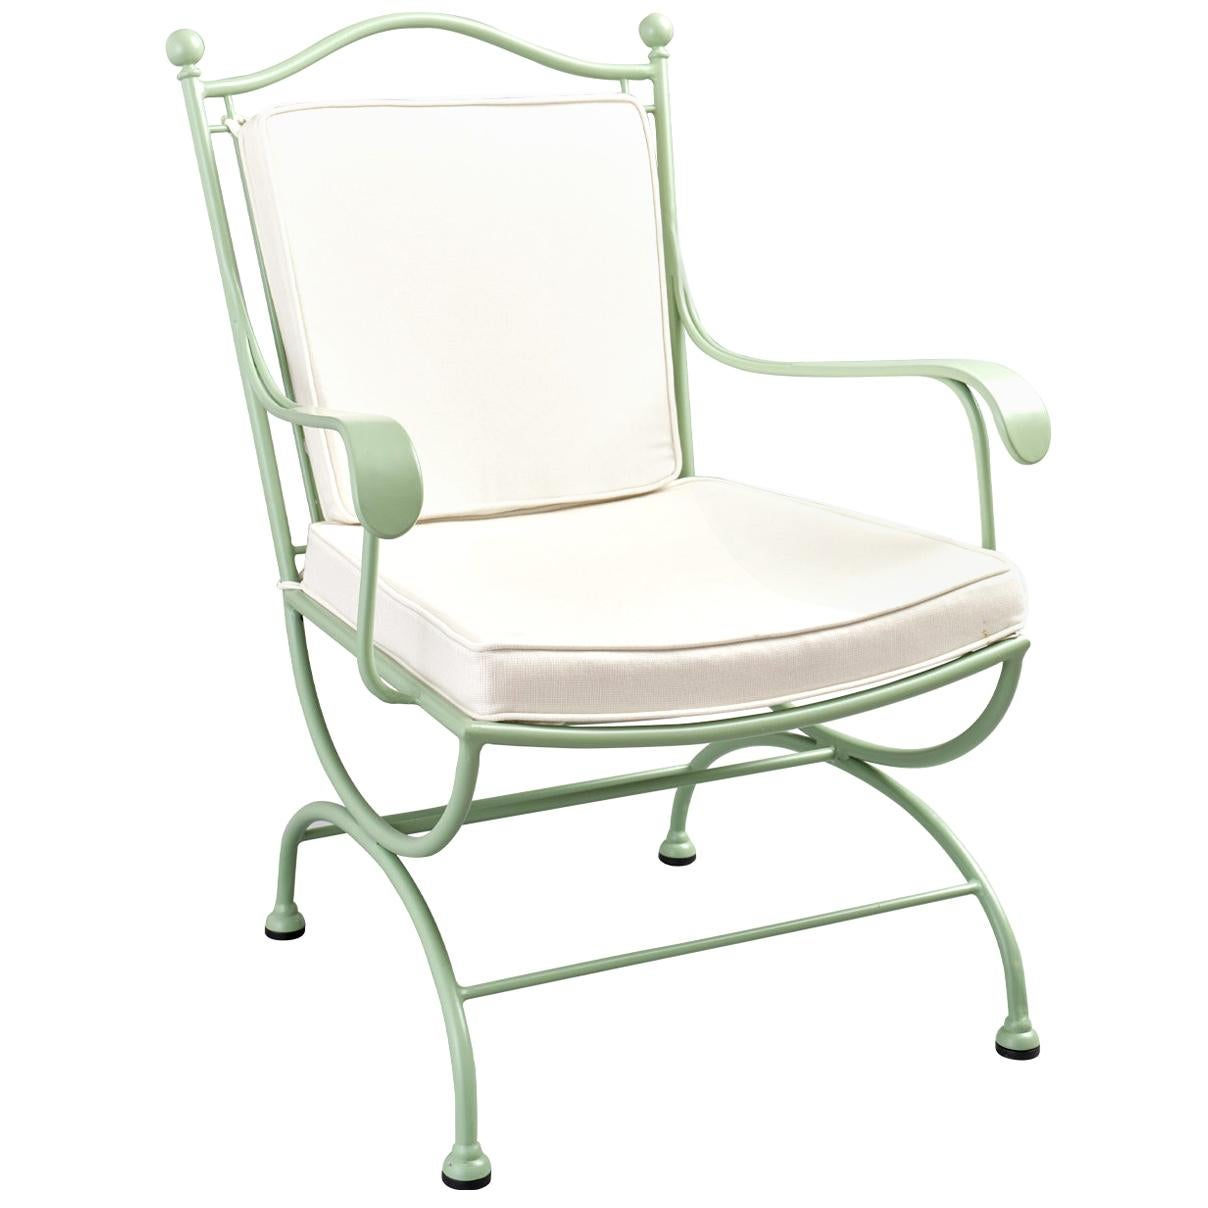 Rombi Outdoor Armchair by Officina Ciani